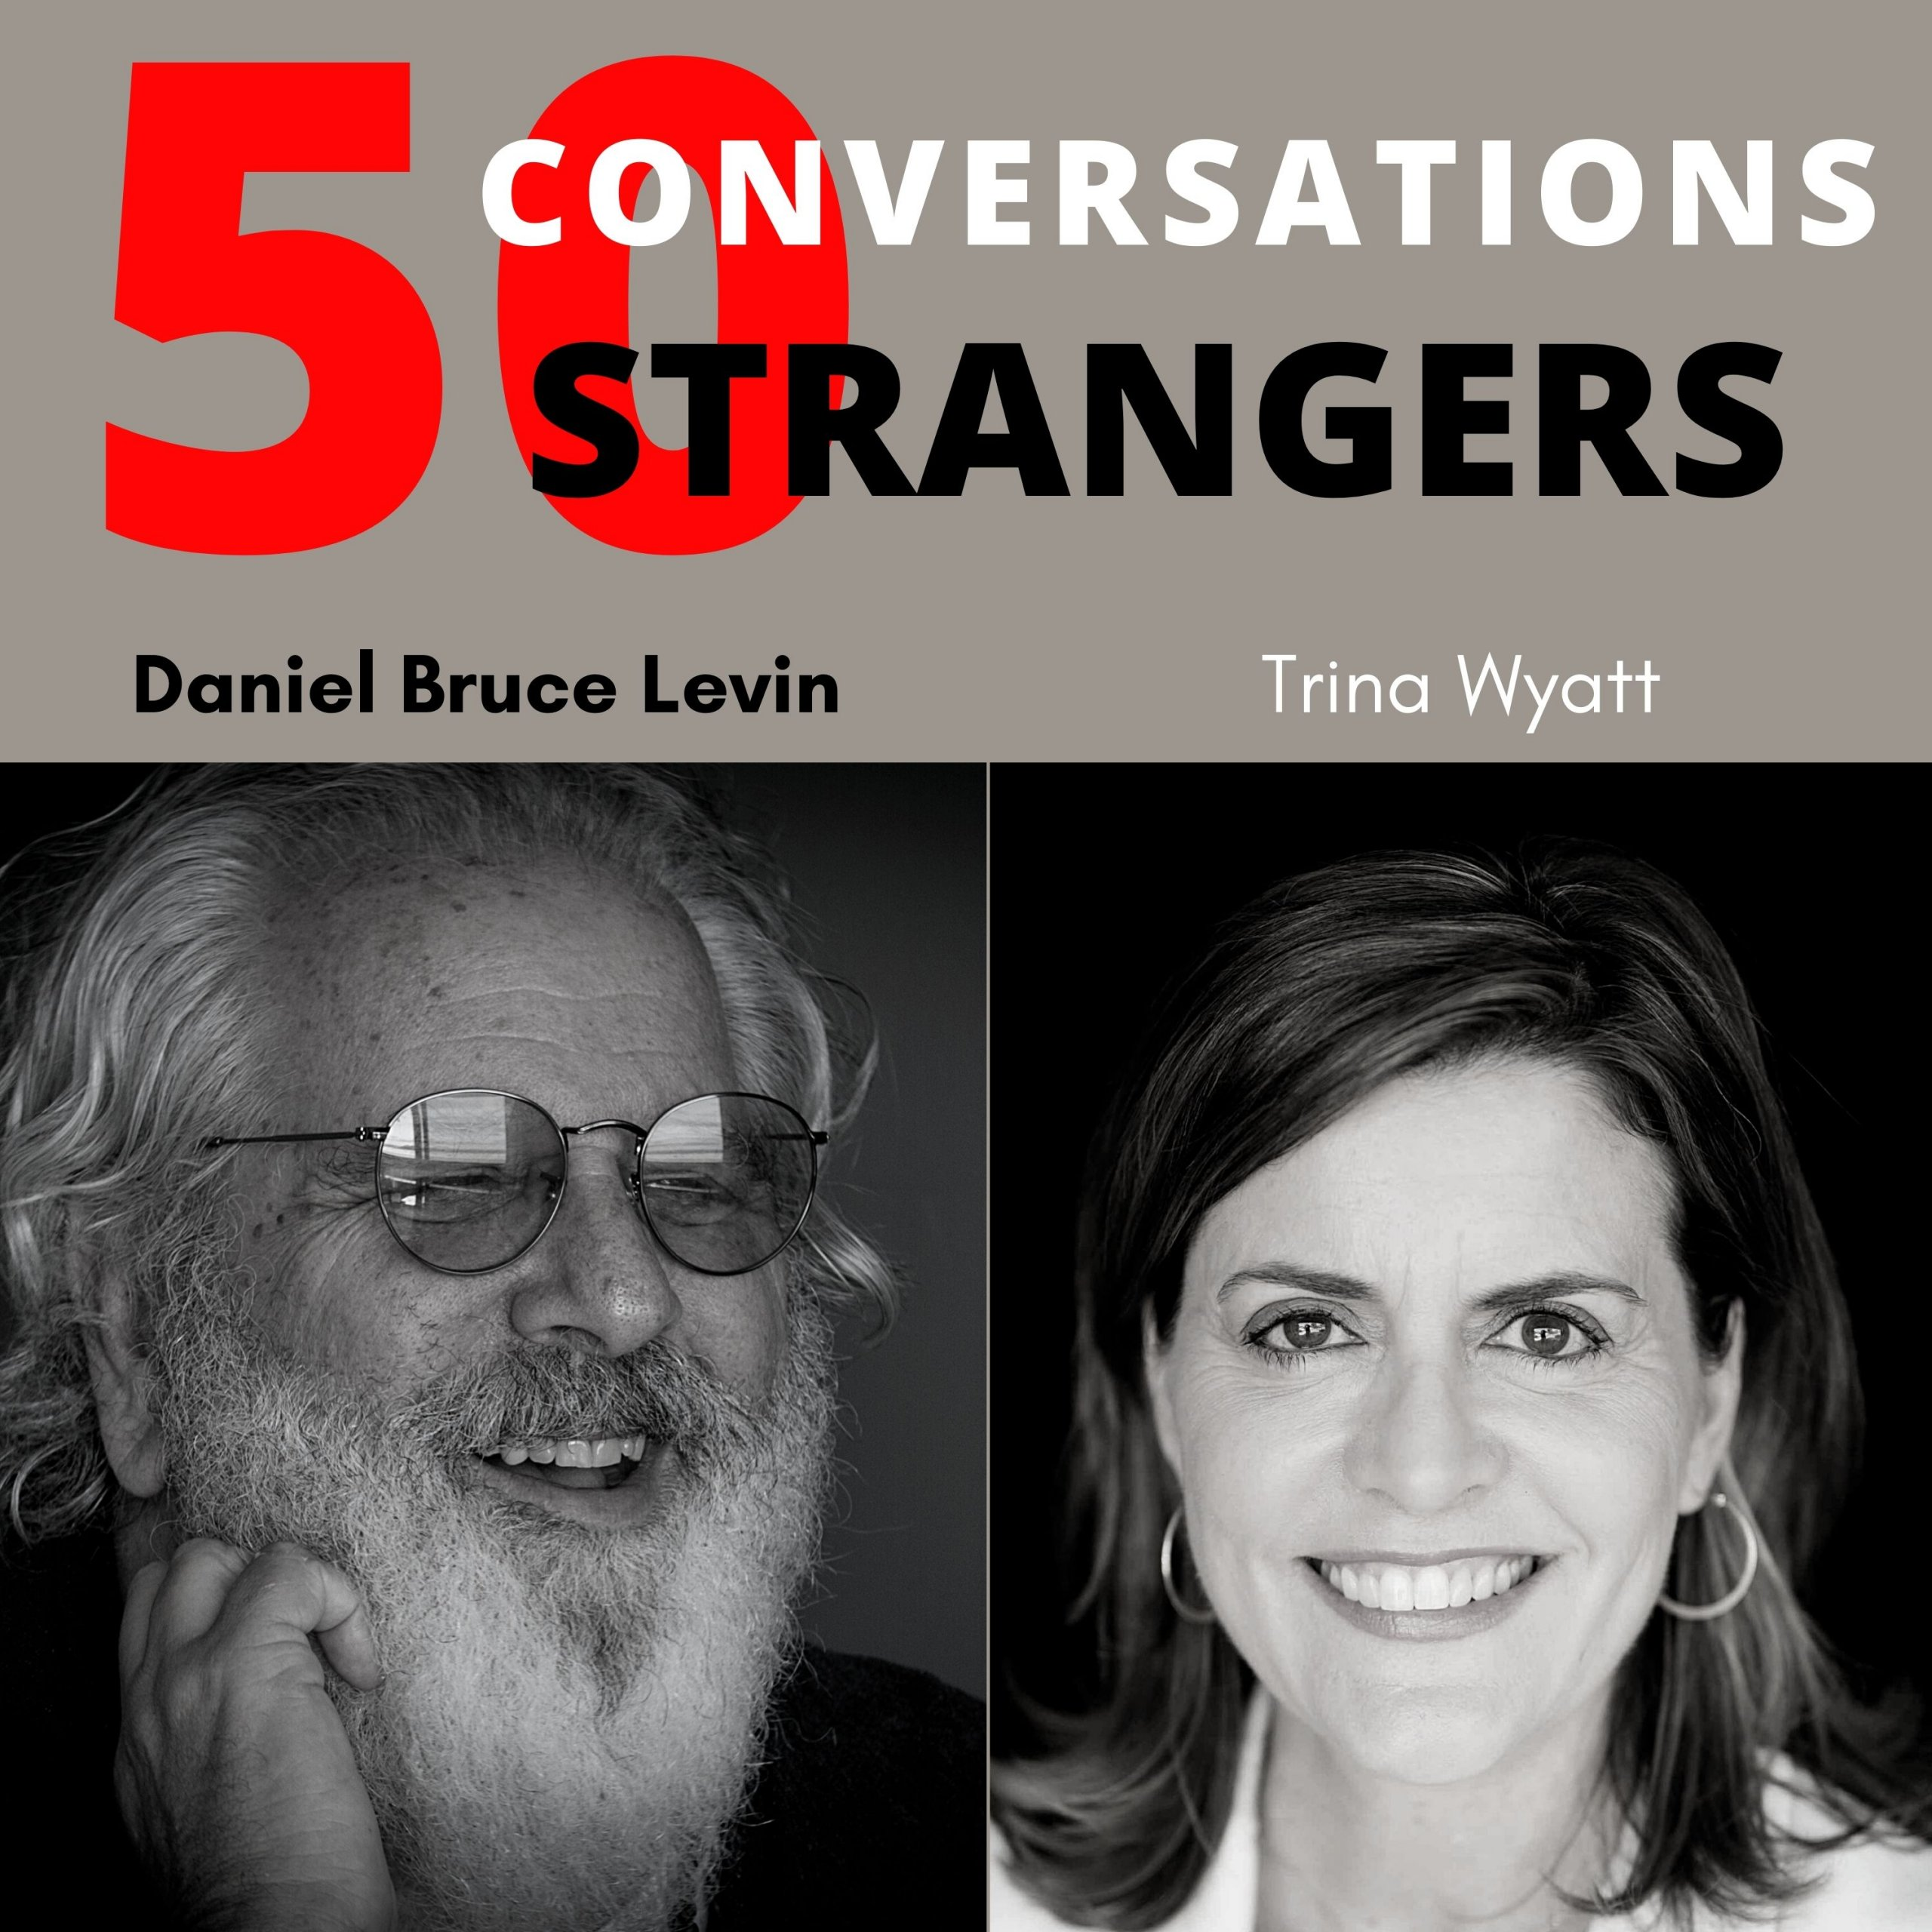 50 Conversations with 50 Strangers with Trina Wyatt